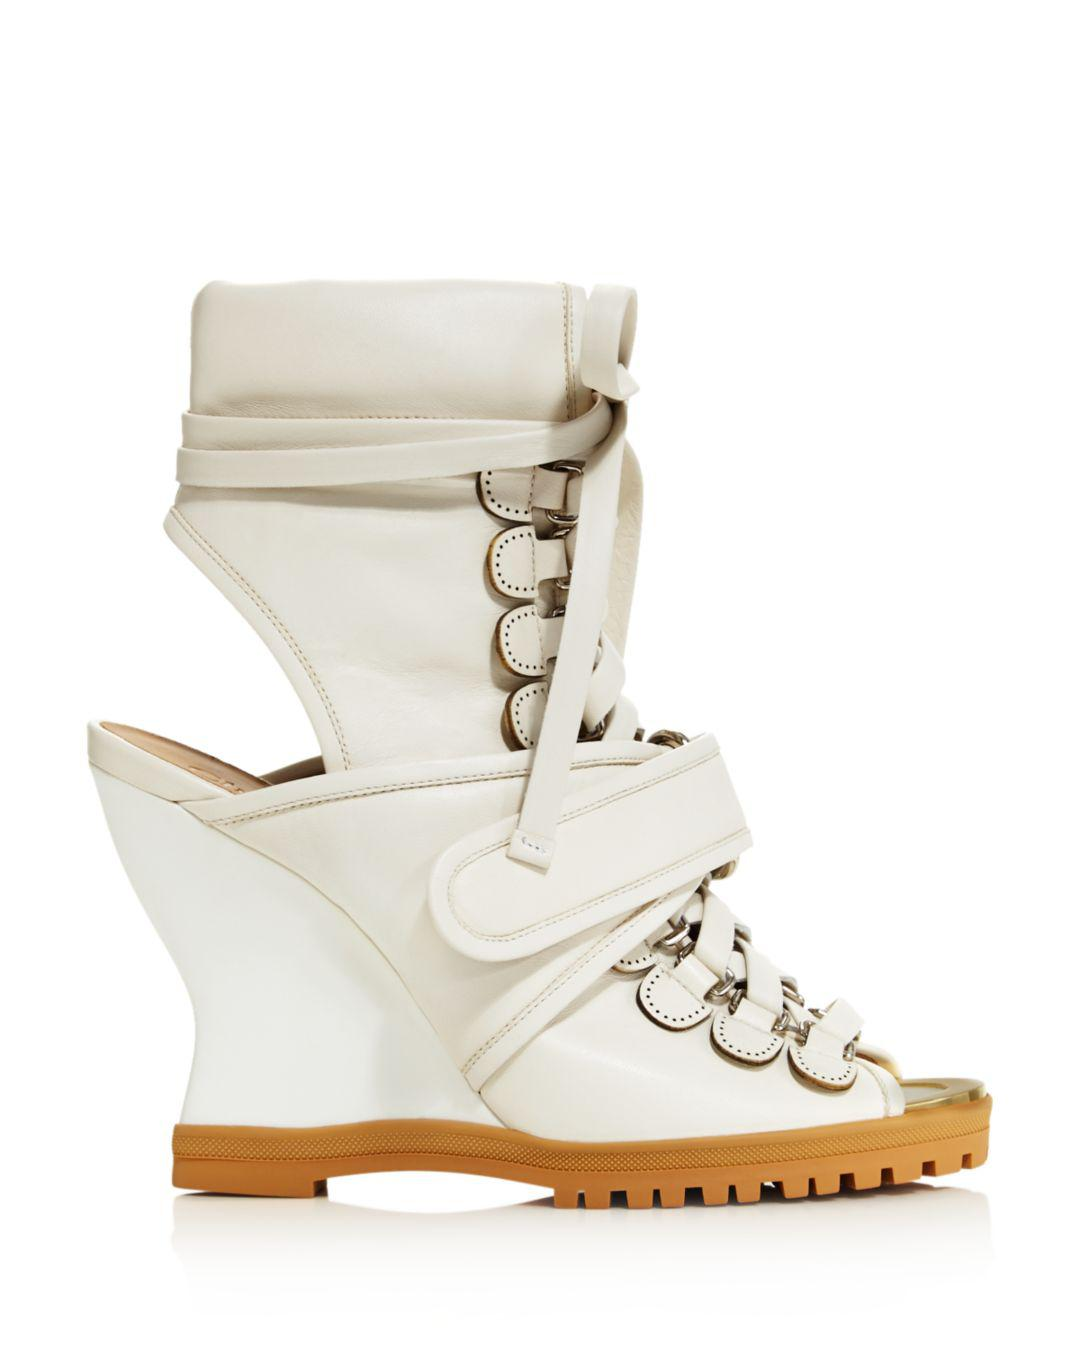 26568c2b1803 Chloé Women s River Open Toe Leather Ankle Booties in White - Lyst